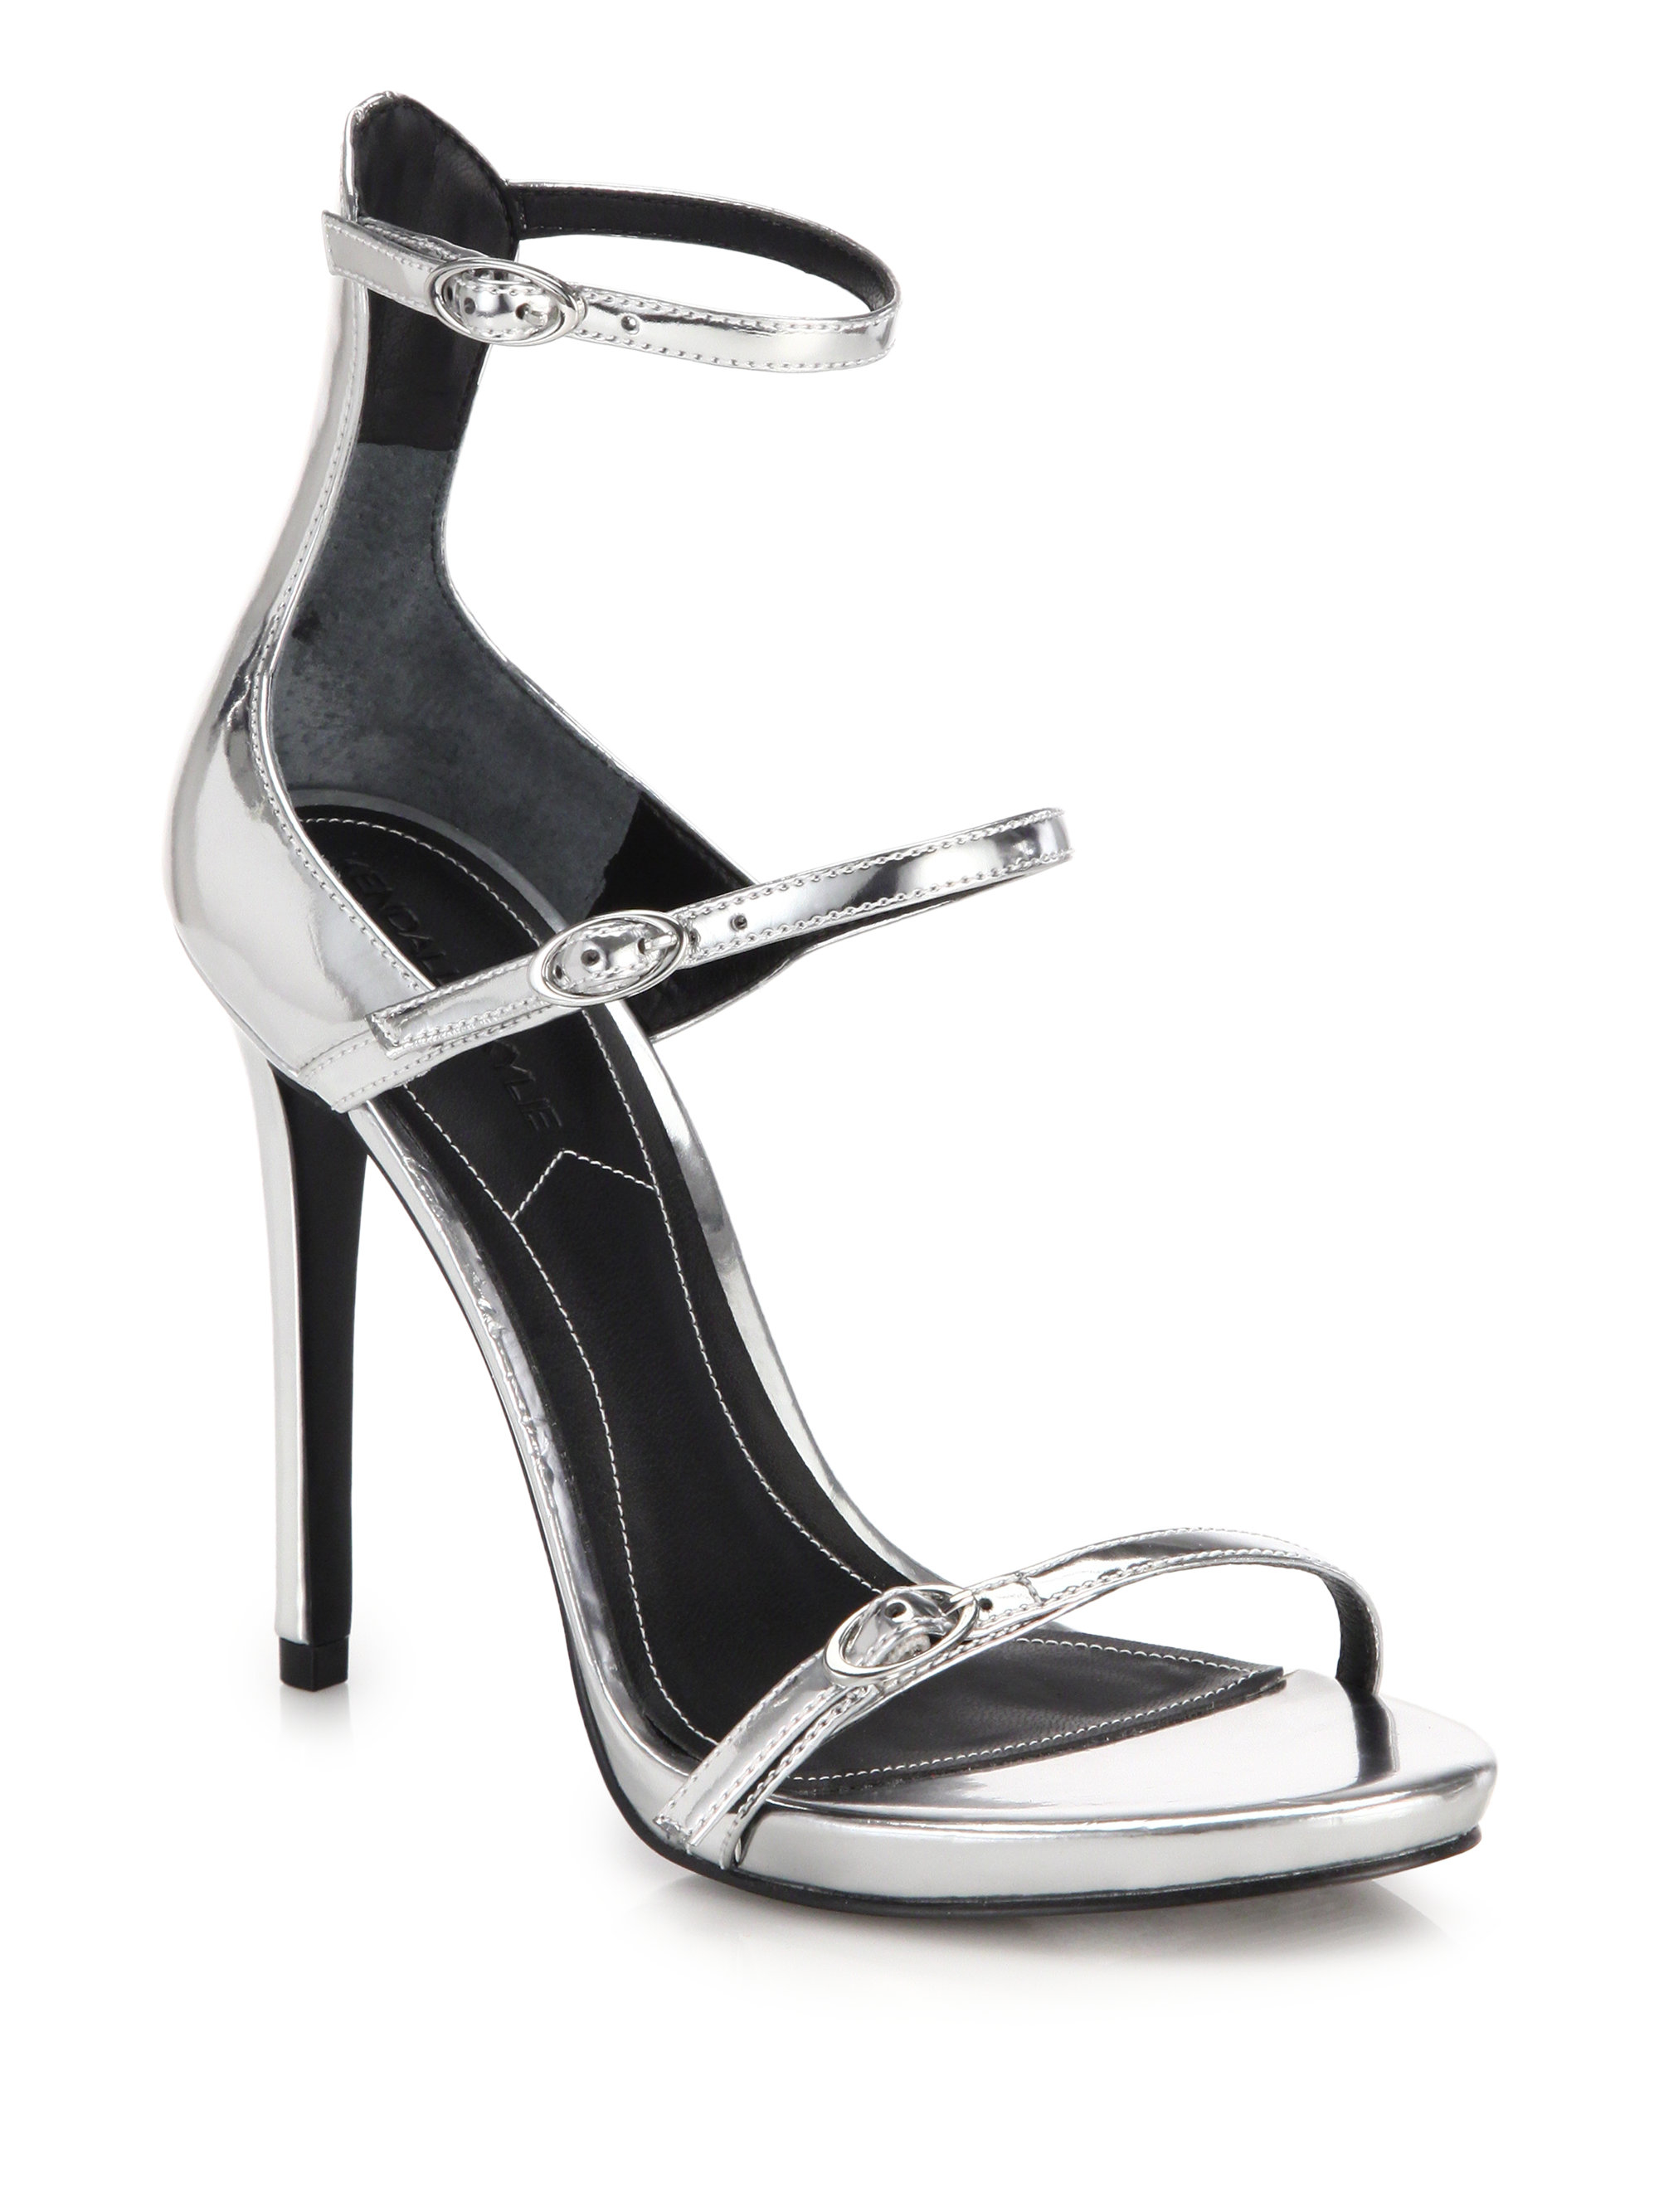 KENDALL + KYLIE Metallic Leather Sandals aMYeB4e